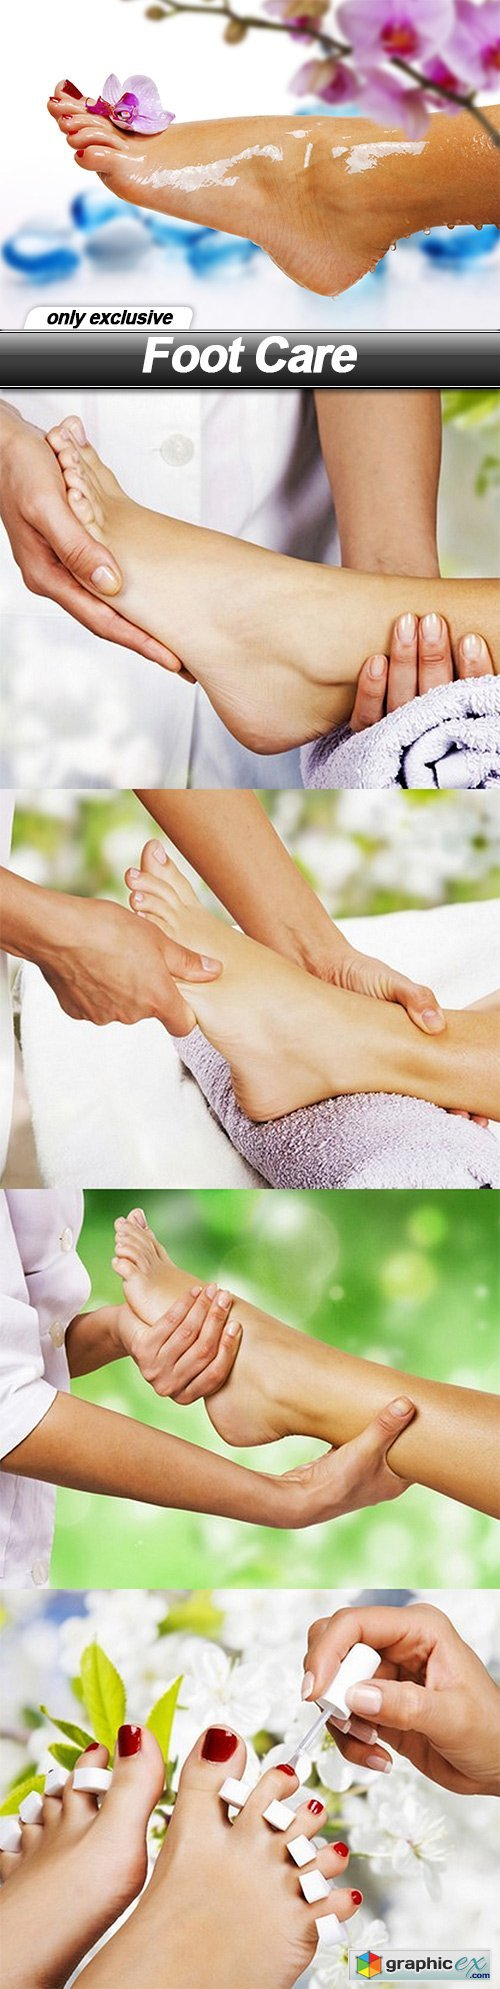 Foot Care - 5 UHQ JPEG